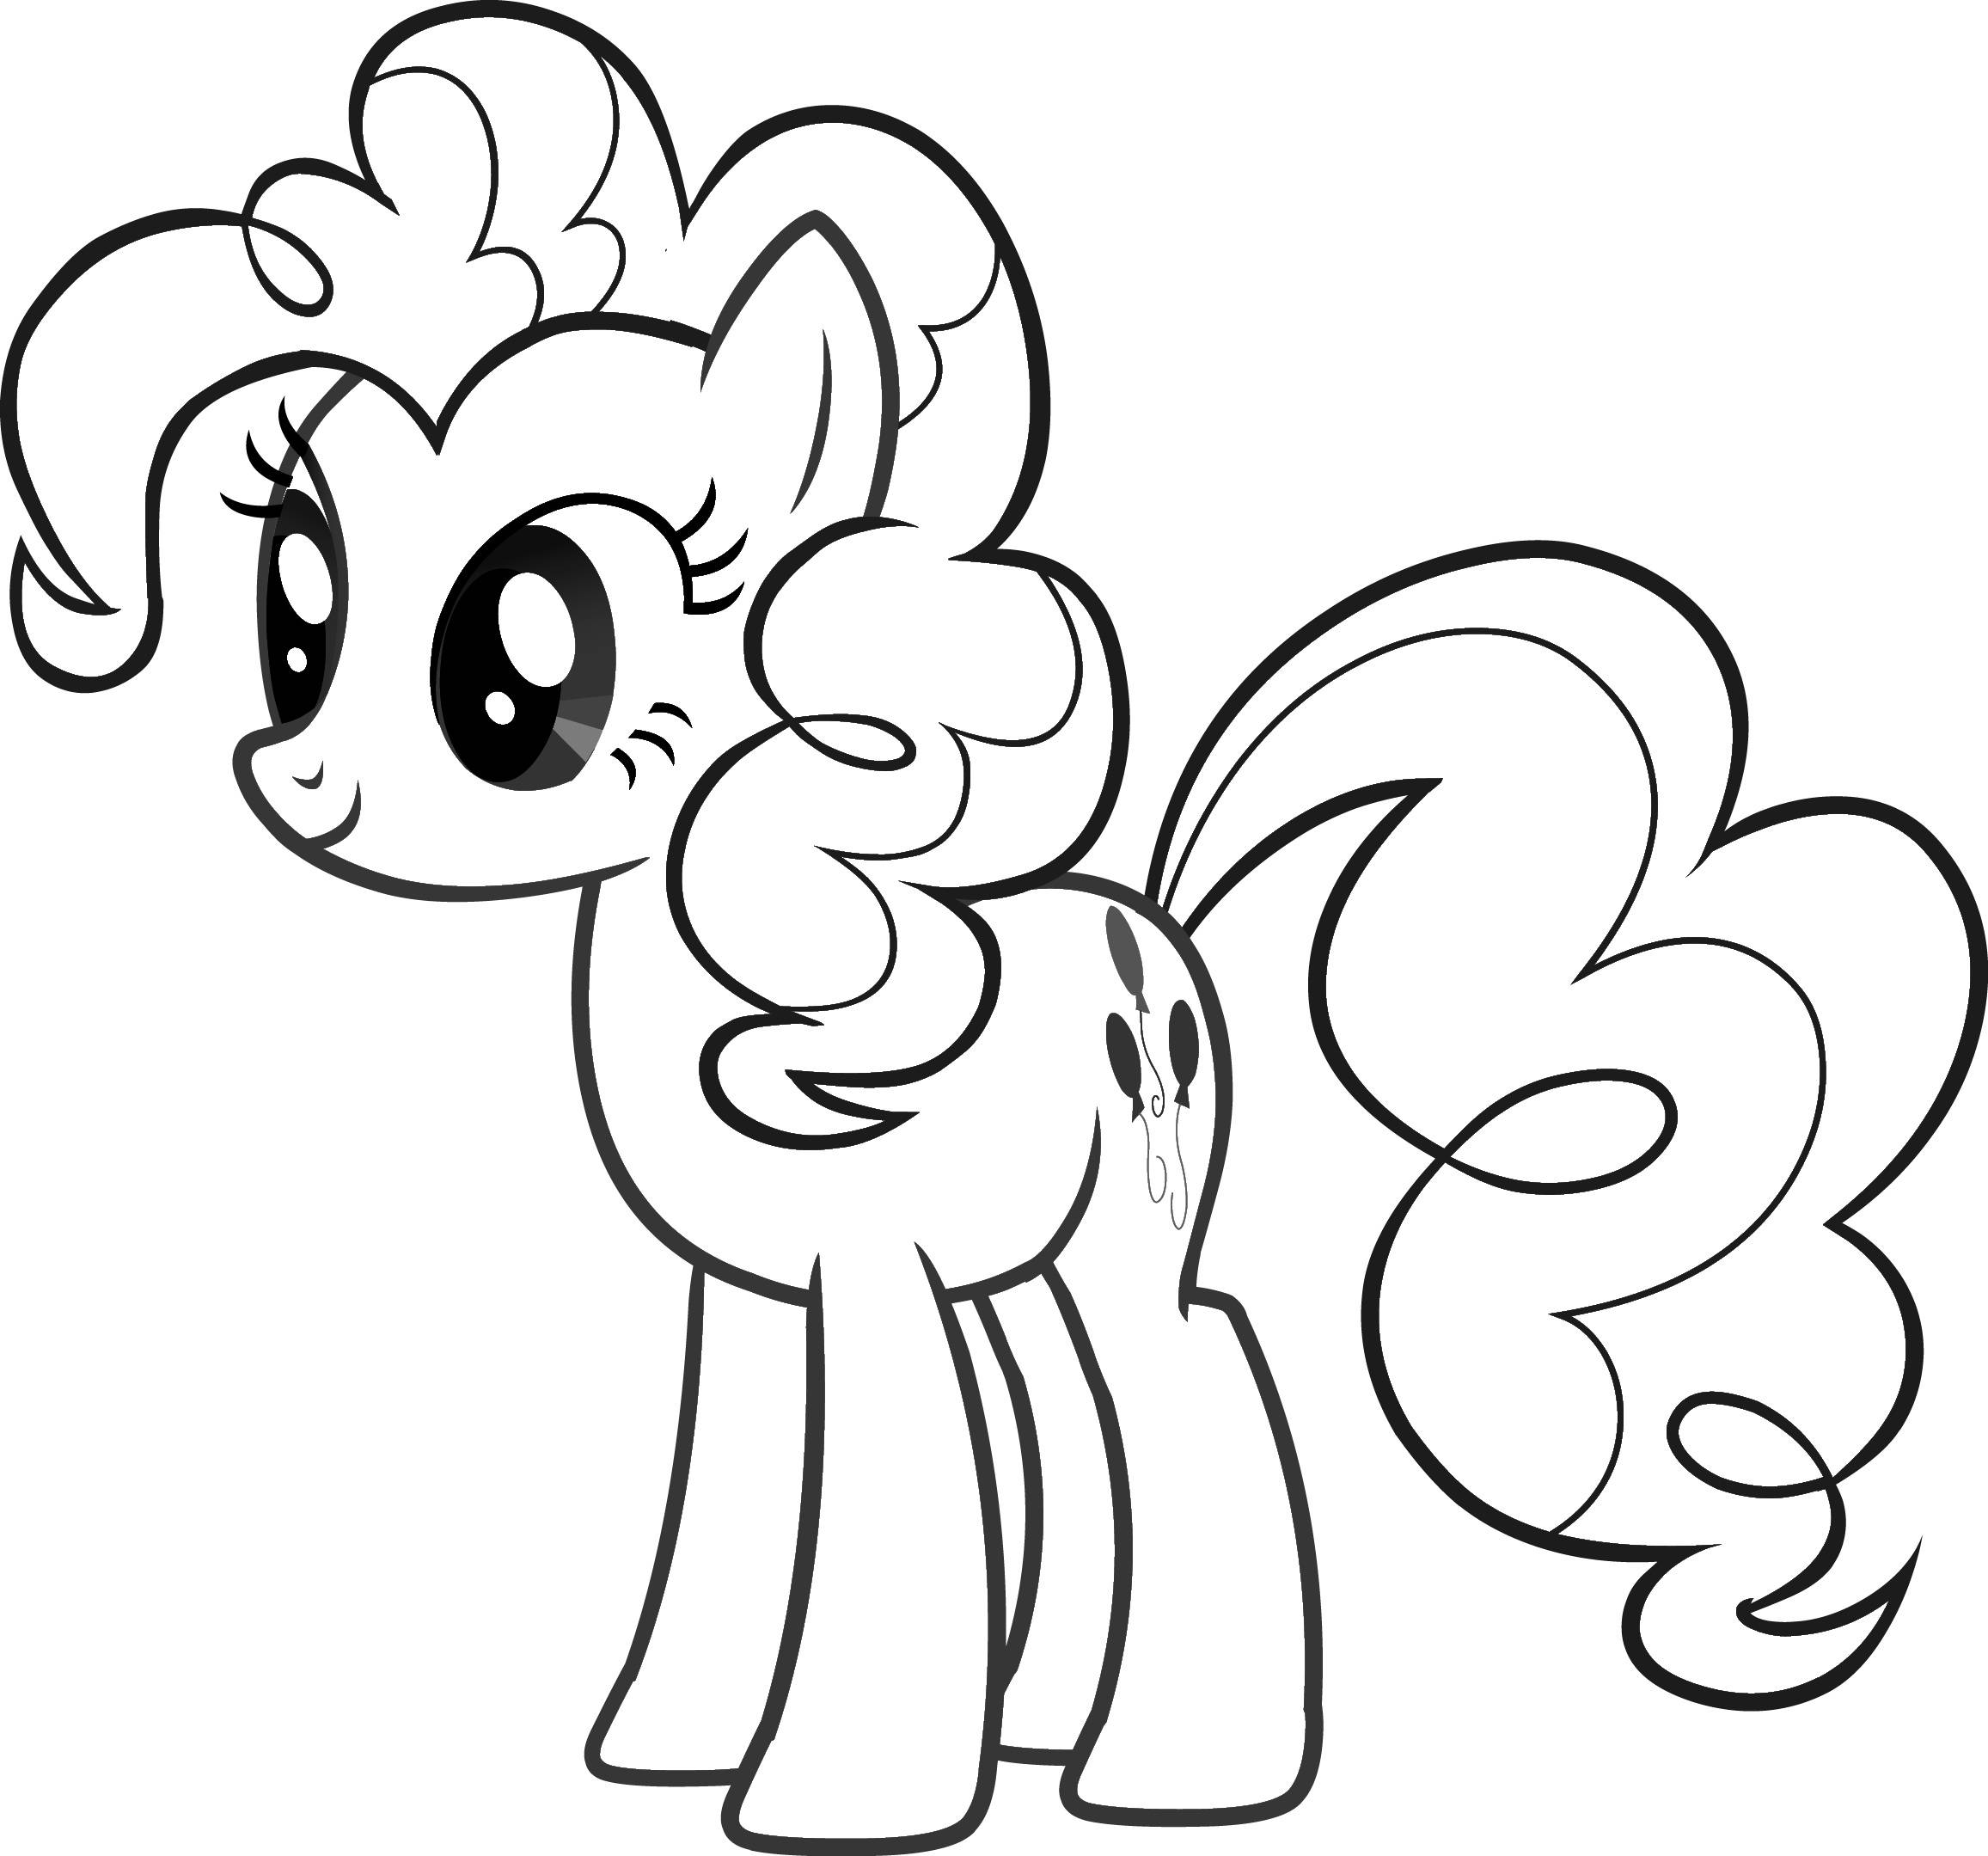 my little pony friendship is magic coloring page mane goodall coloring page free my little pony pony magic my friendship coloring little is page